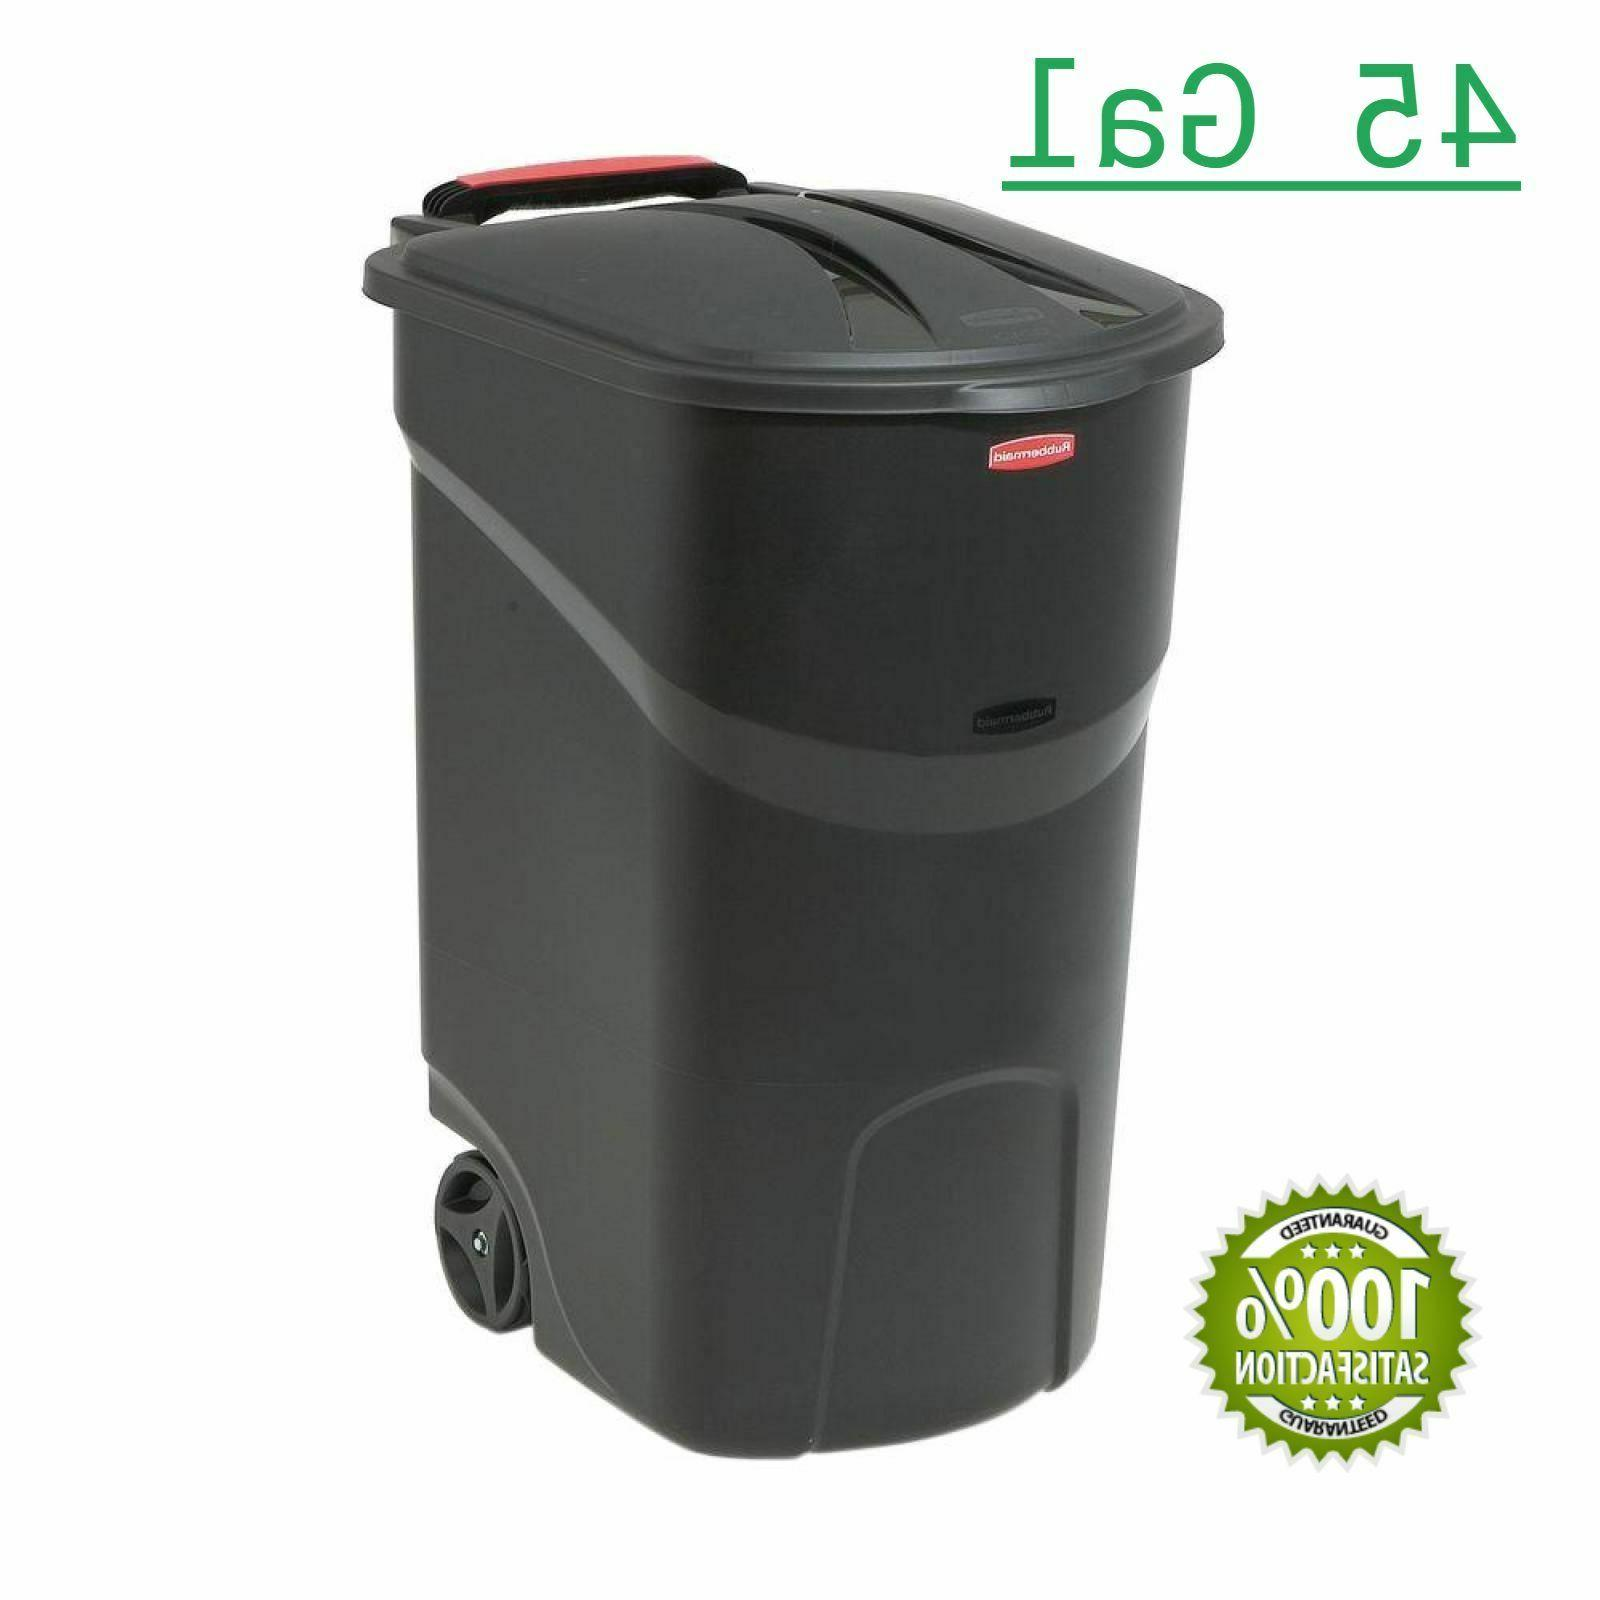 45 gal large rolling outdoor trash can